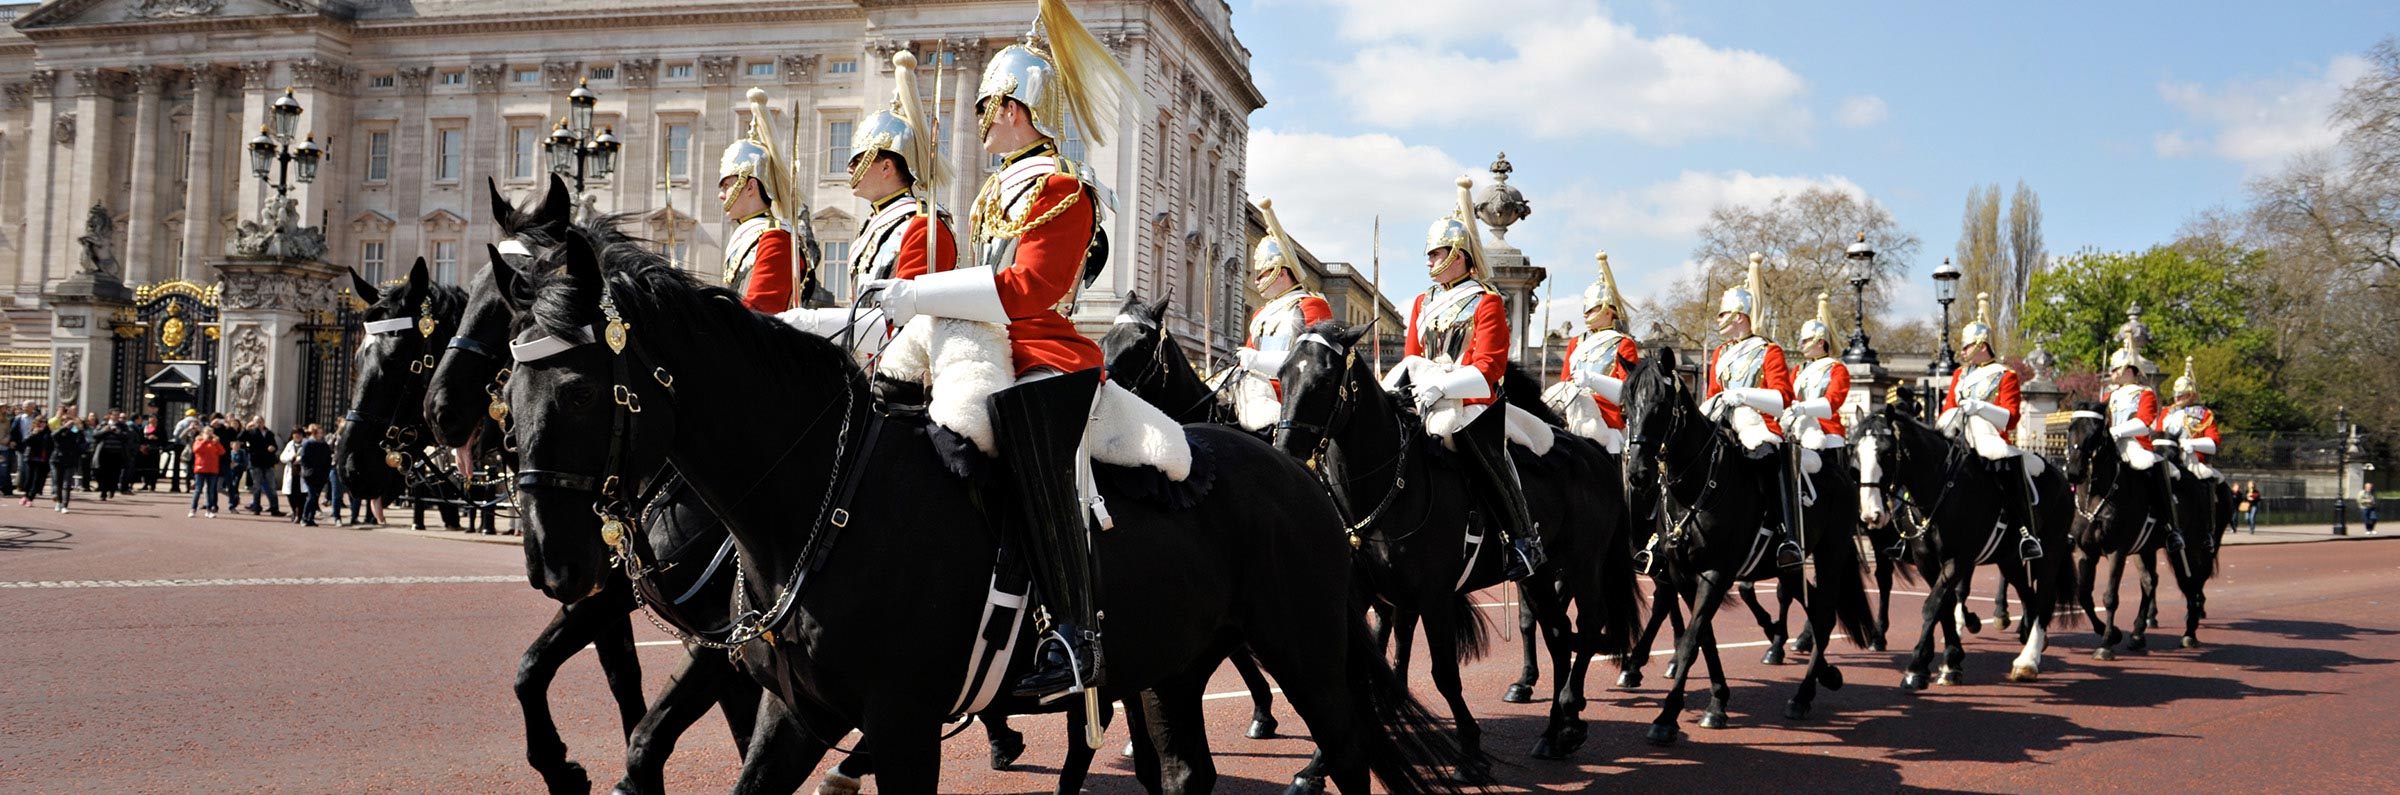 Sights and attractions in London